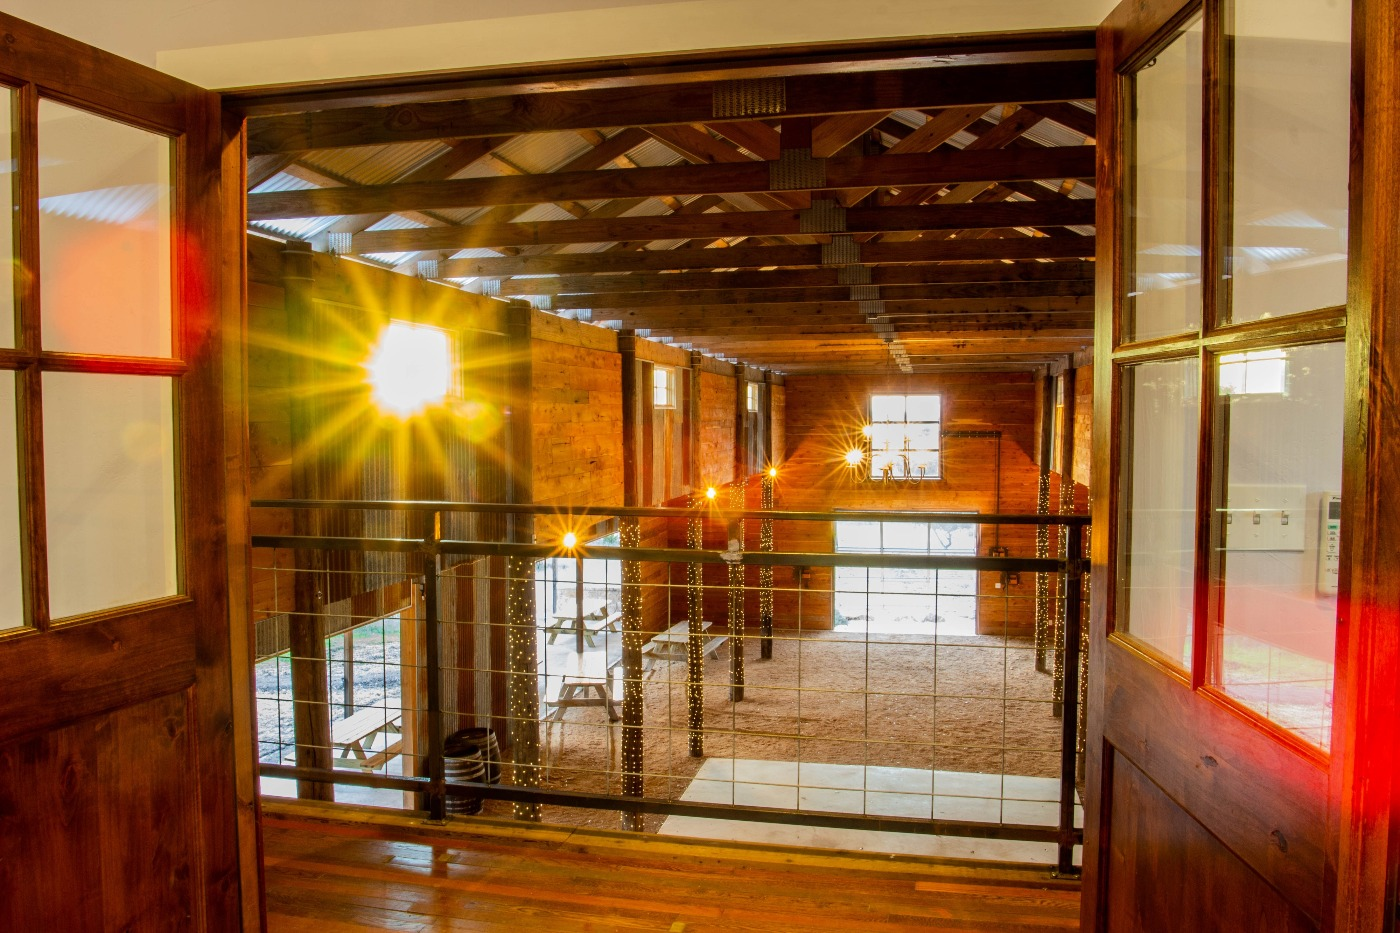 event center day2 i.jpg